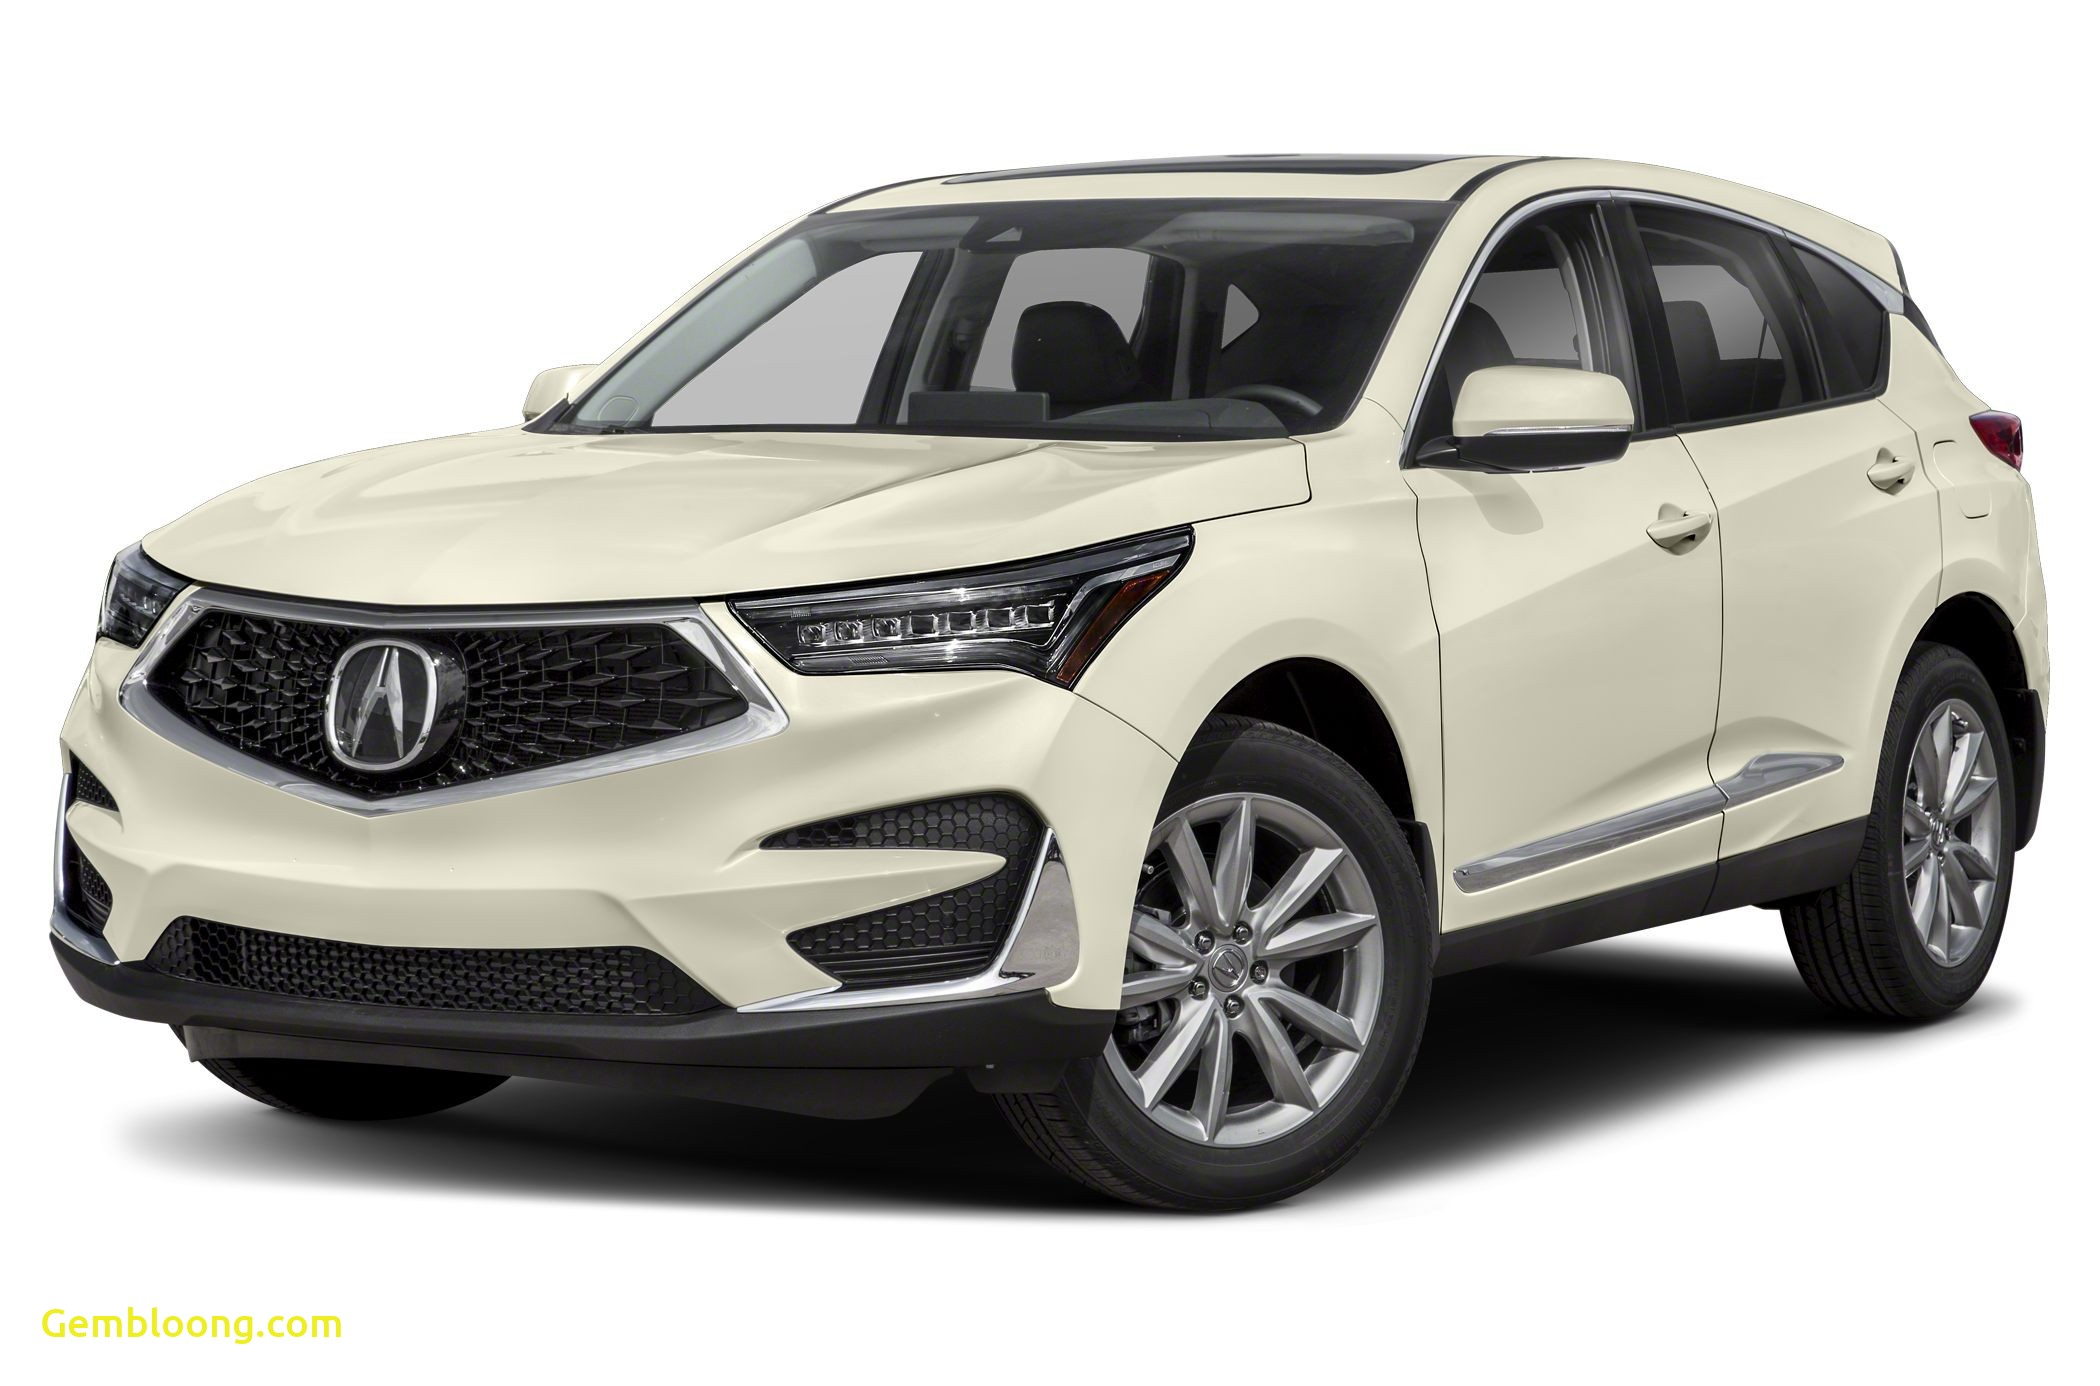 2020 acura rdx problems inspirational 2019 acura rdx owner reviews and ratings photograph of 2020 acura rdx problems